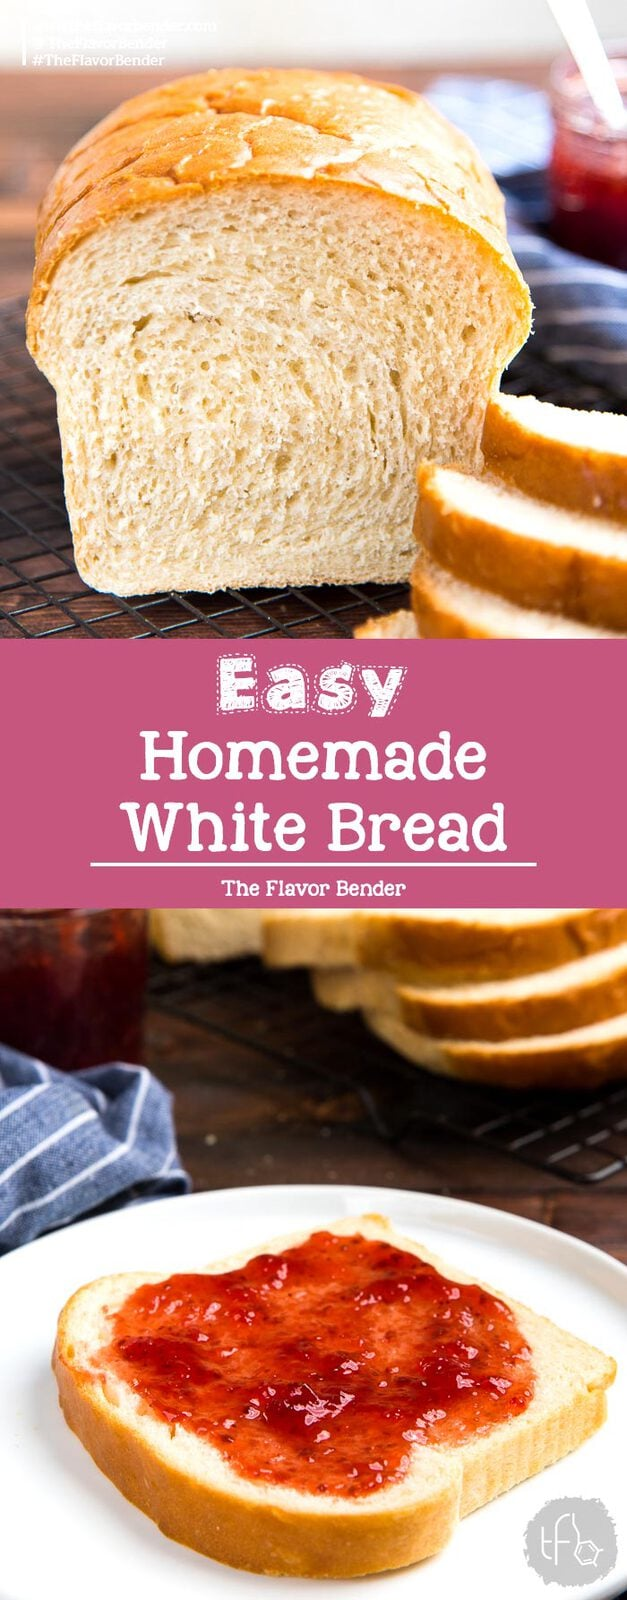 How to make the best Homemade White Bread that is soft and delicious. An easy to follow recipe for perfect homemade bread with step by step instructions.#HomemadeBreadLoaf #WhiteBread #SandwichBread